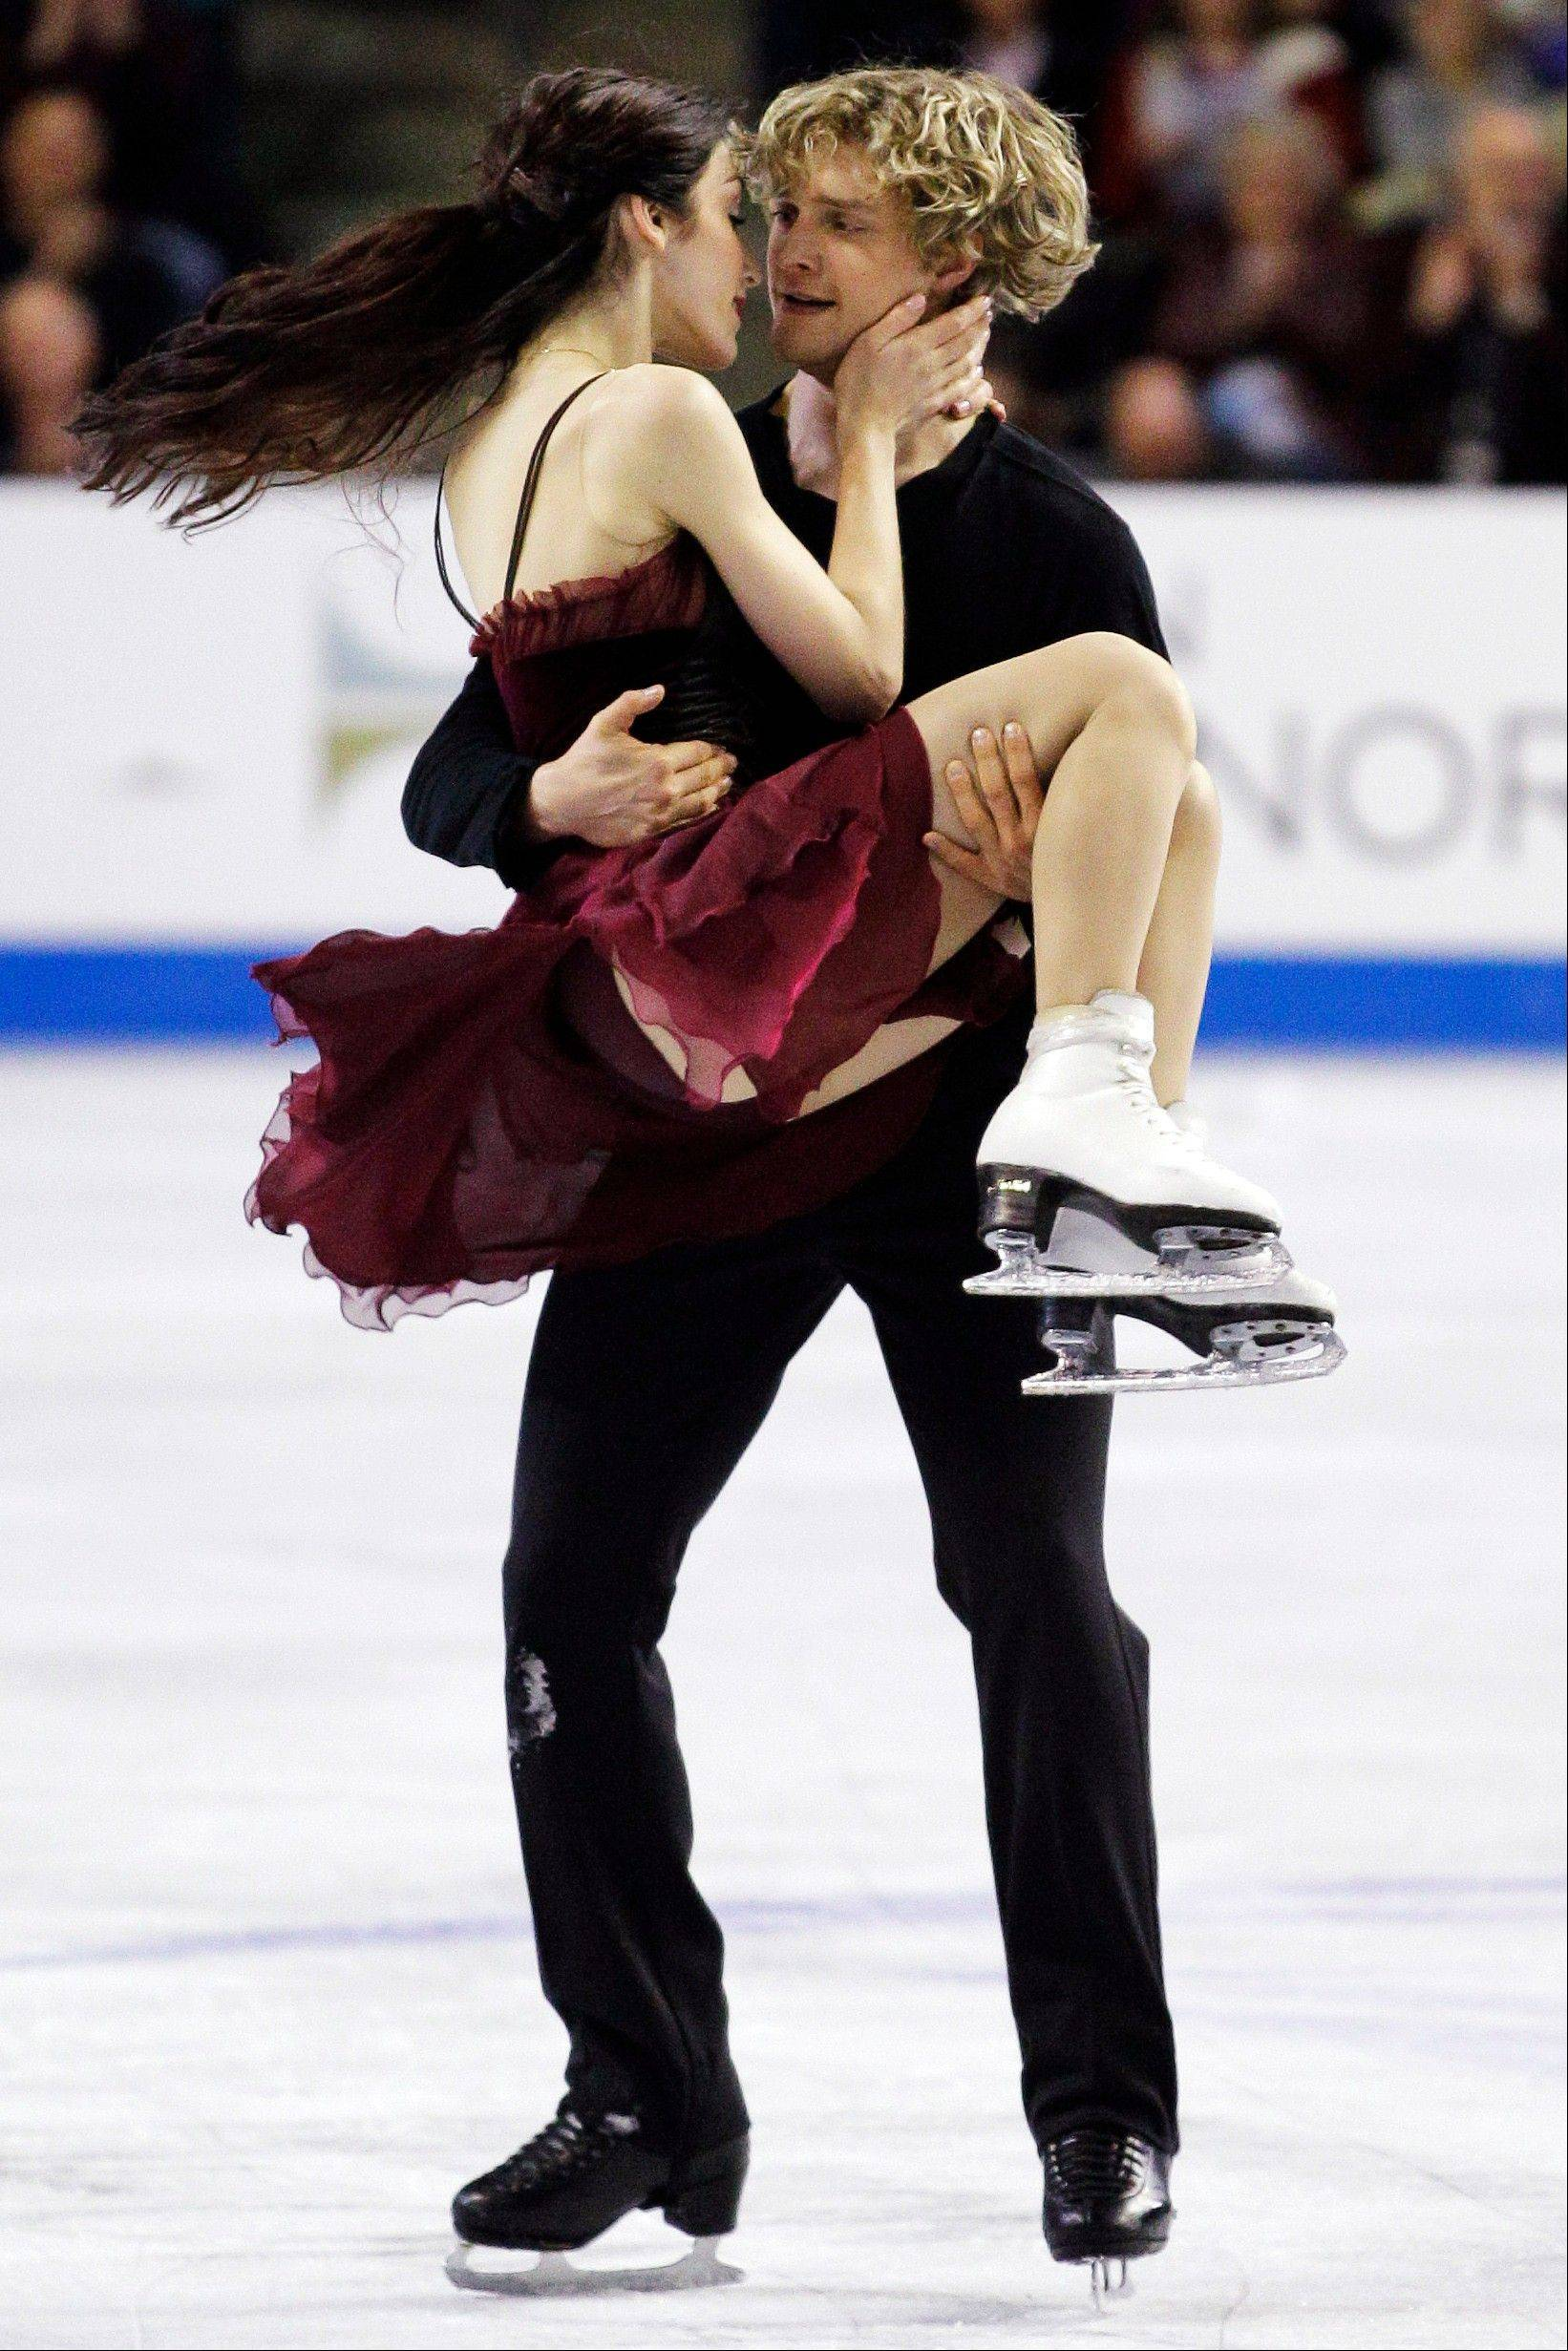 Charlie White picks up Meryl Davis after their first-place finish in the ice dancing event at Skate America.